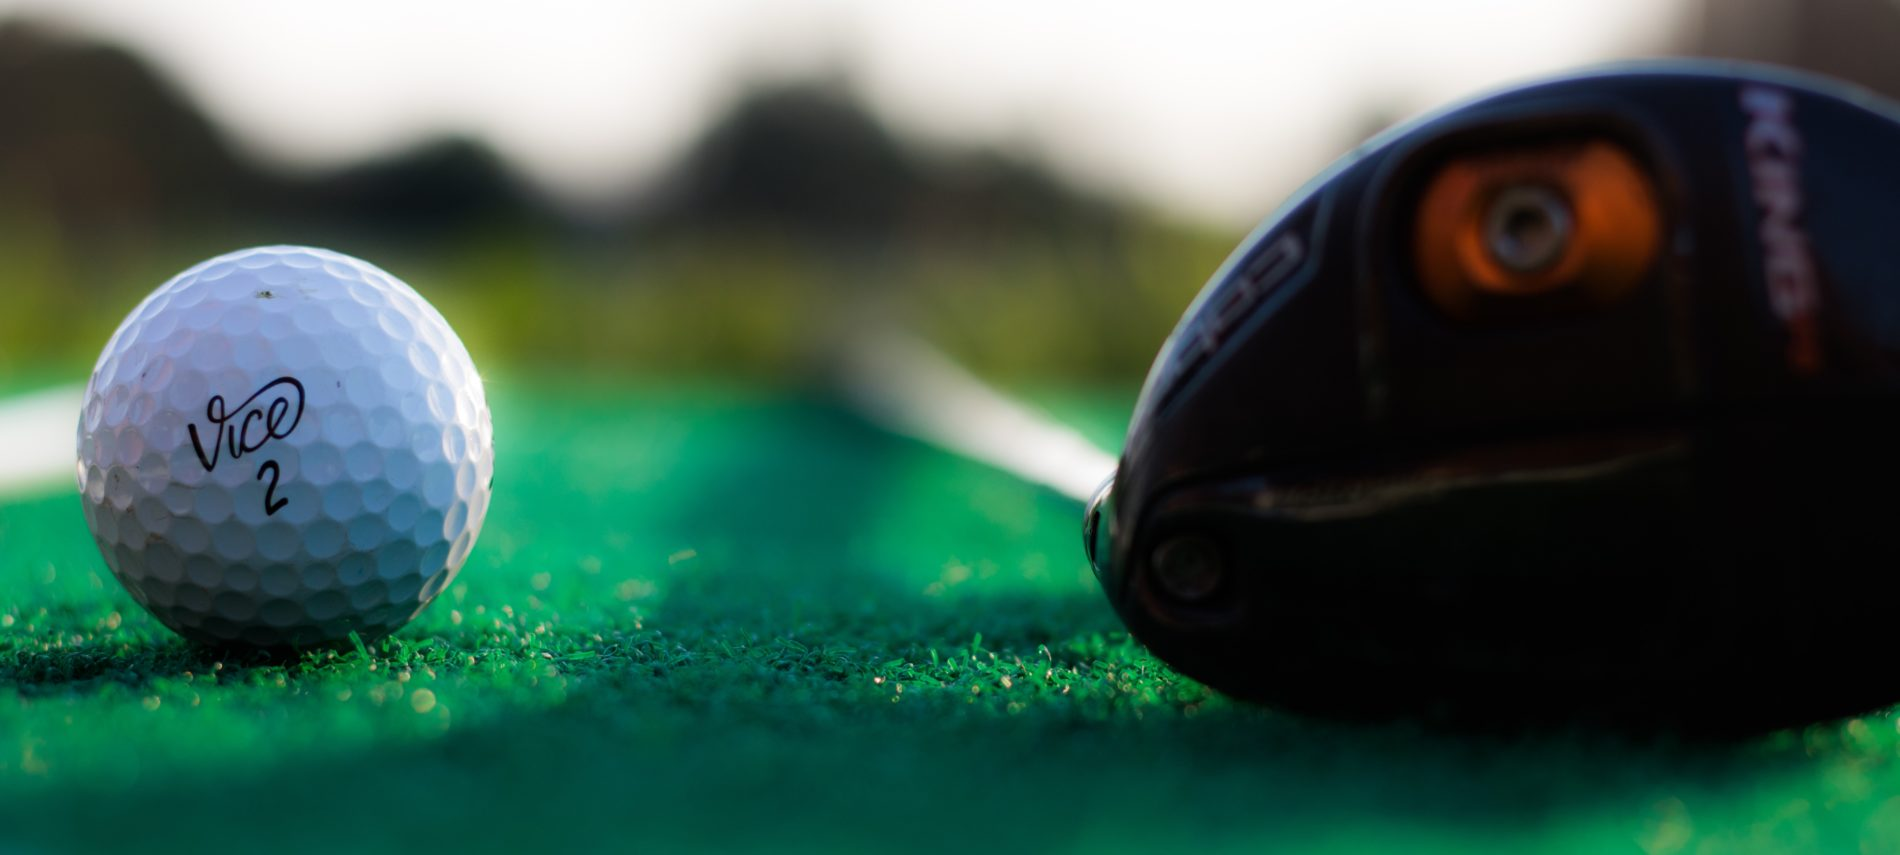 Close up view of a ball and driver.